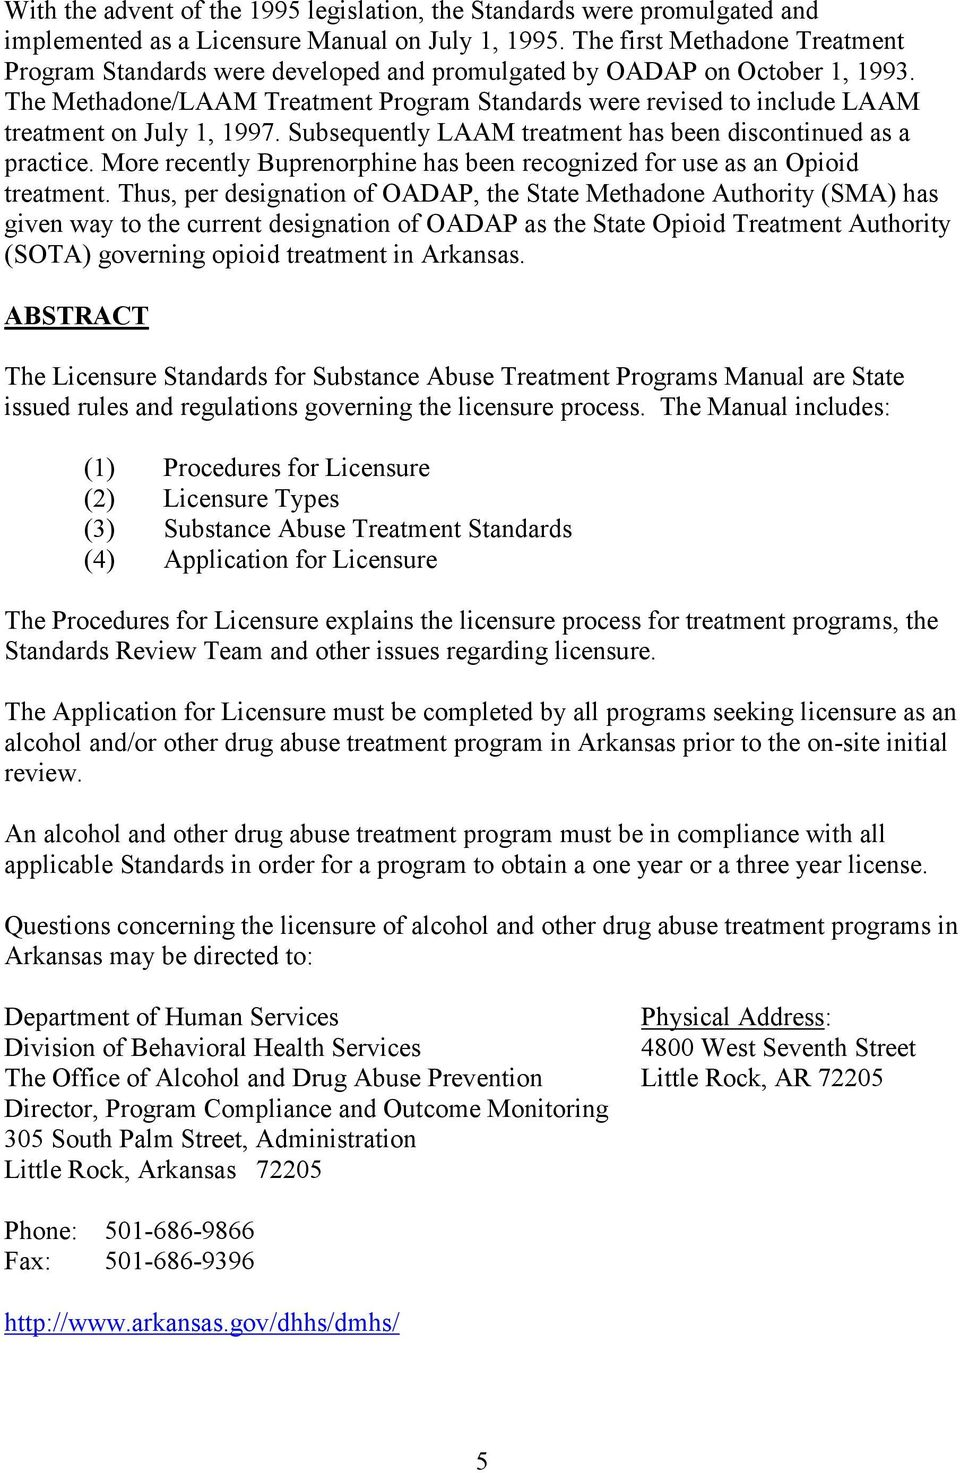 The Methadone/LAAM Treatment Program Standards were revised to include LAAM treatment on July 1, 1997. Subsequently LAAM treatment has been discontinued as a practice.